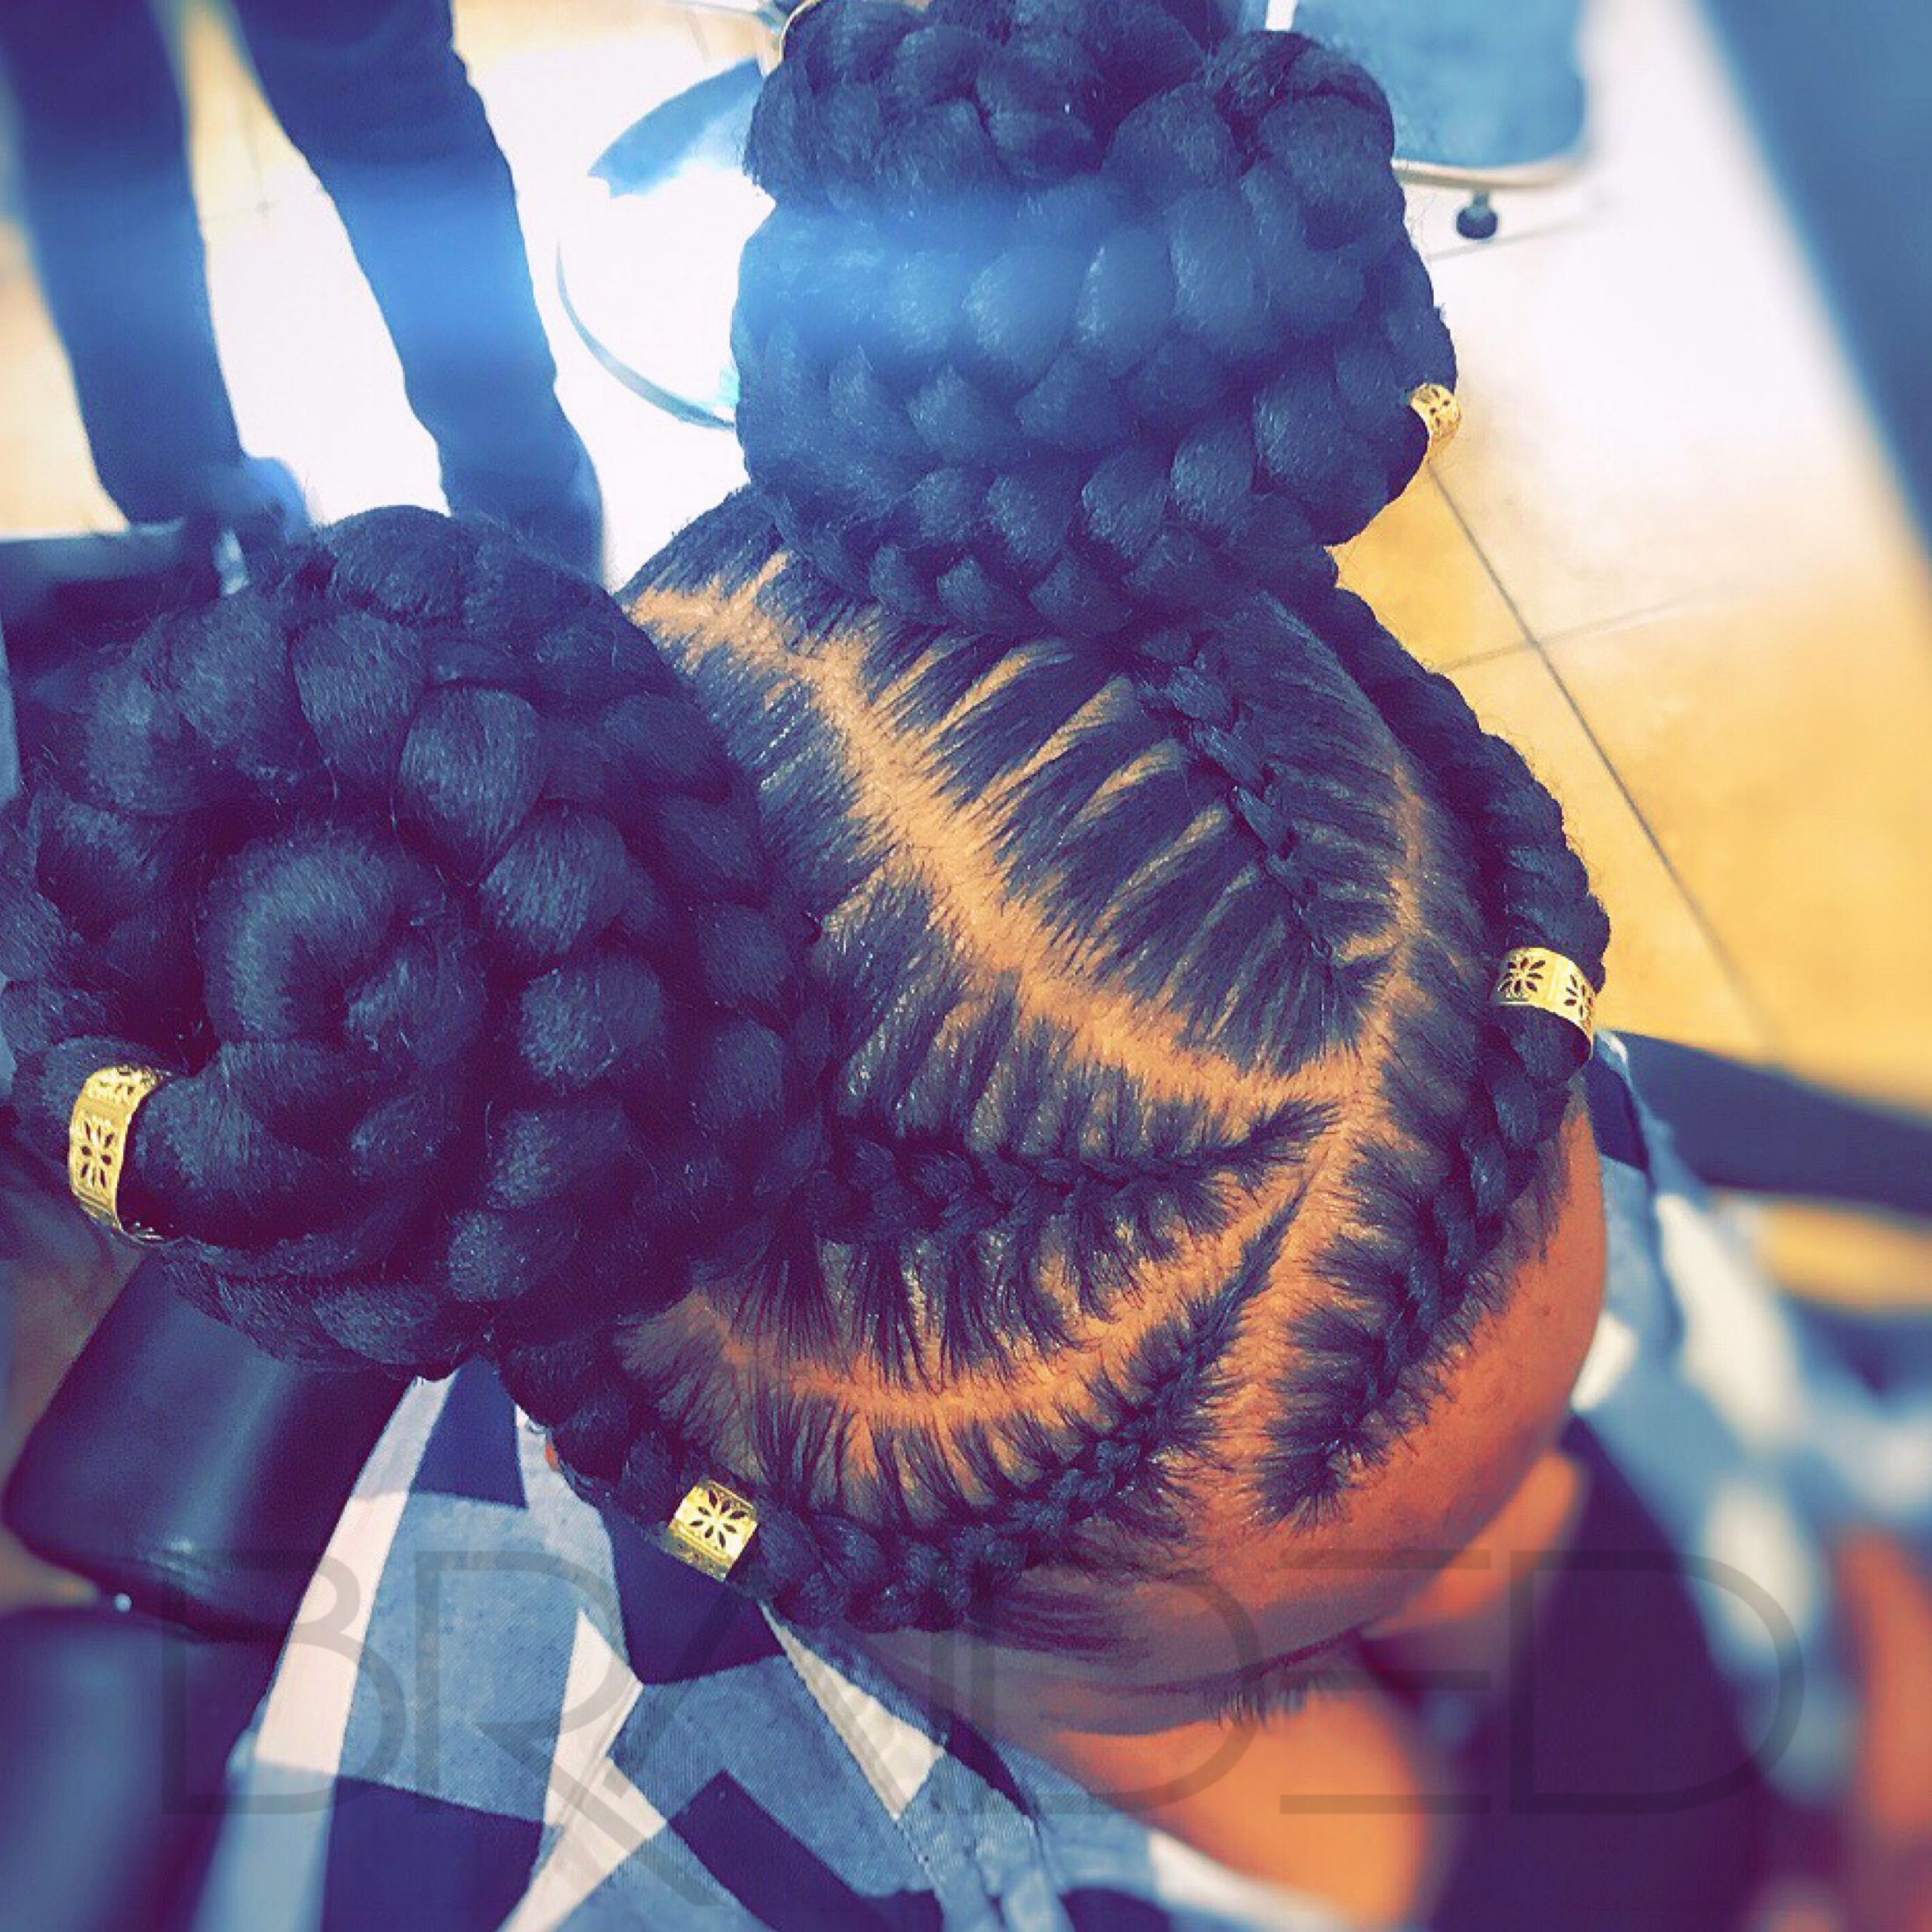 The Latest 26 Trends Of This Season For Ghana Hair Braids hairstyleforblackwomen.net 8 scaled